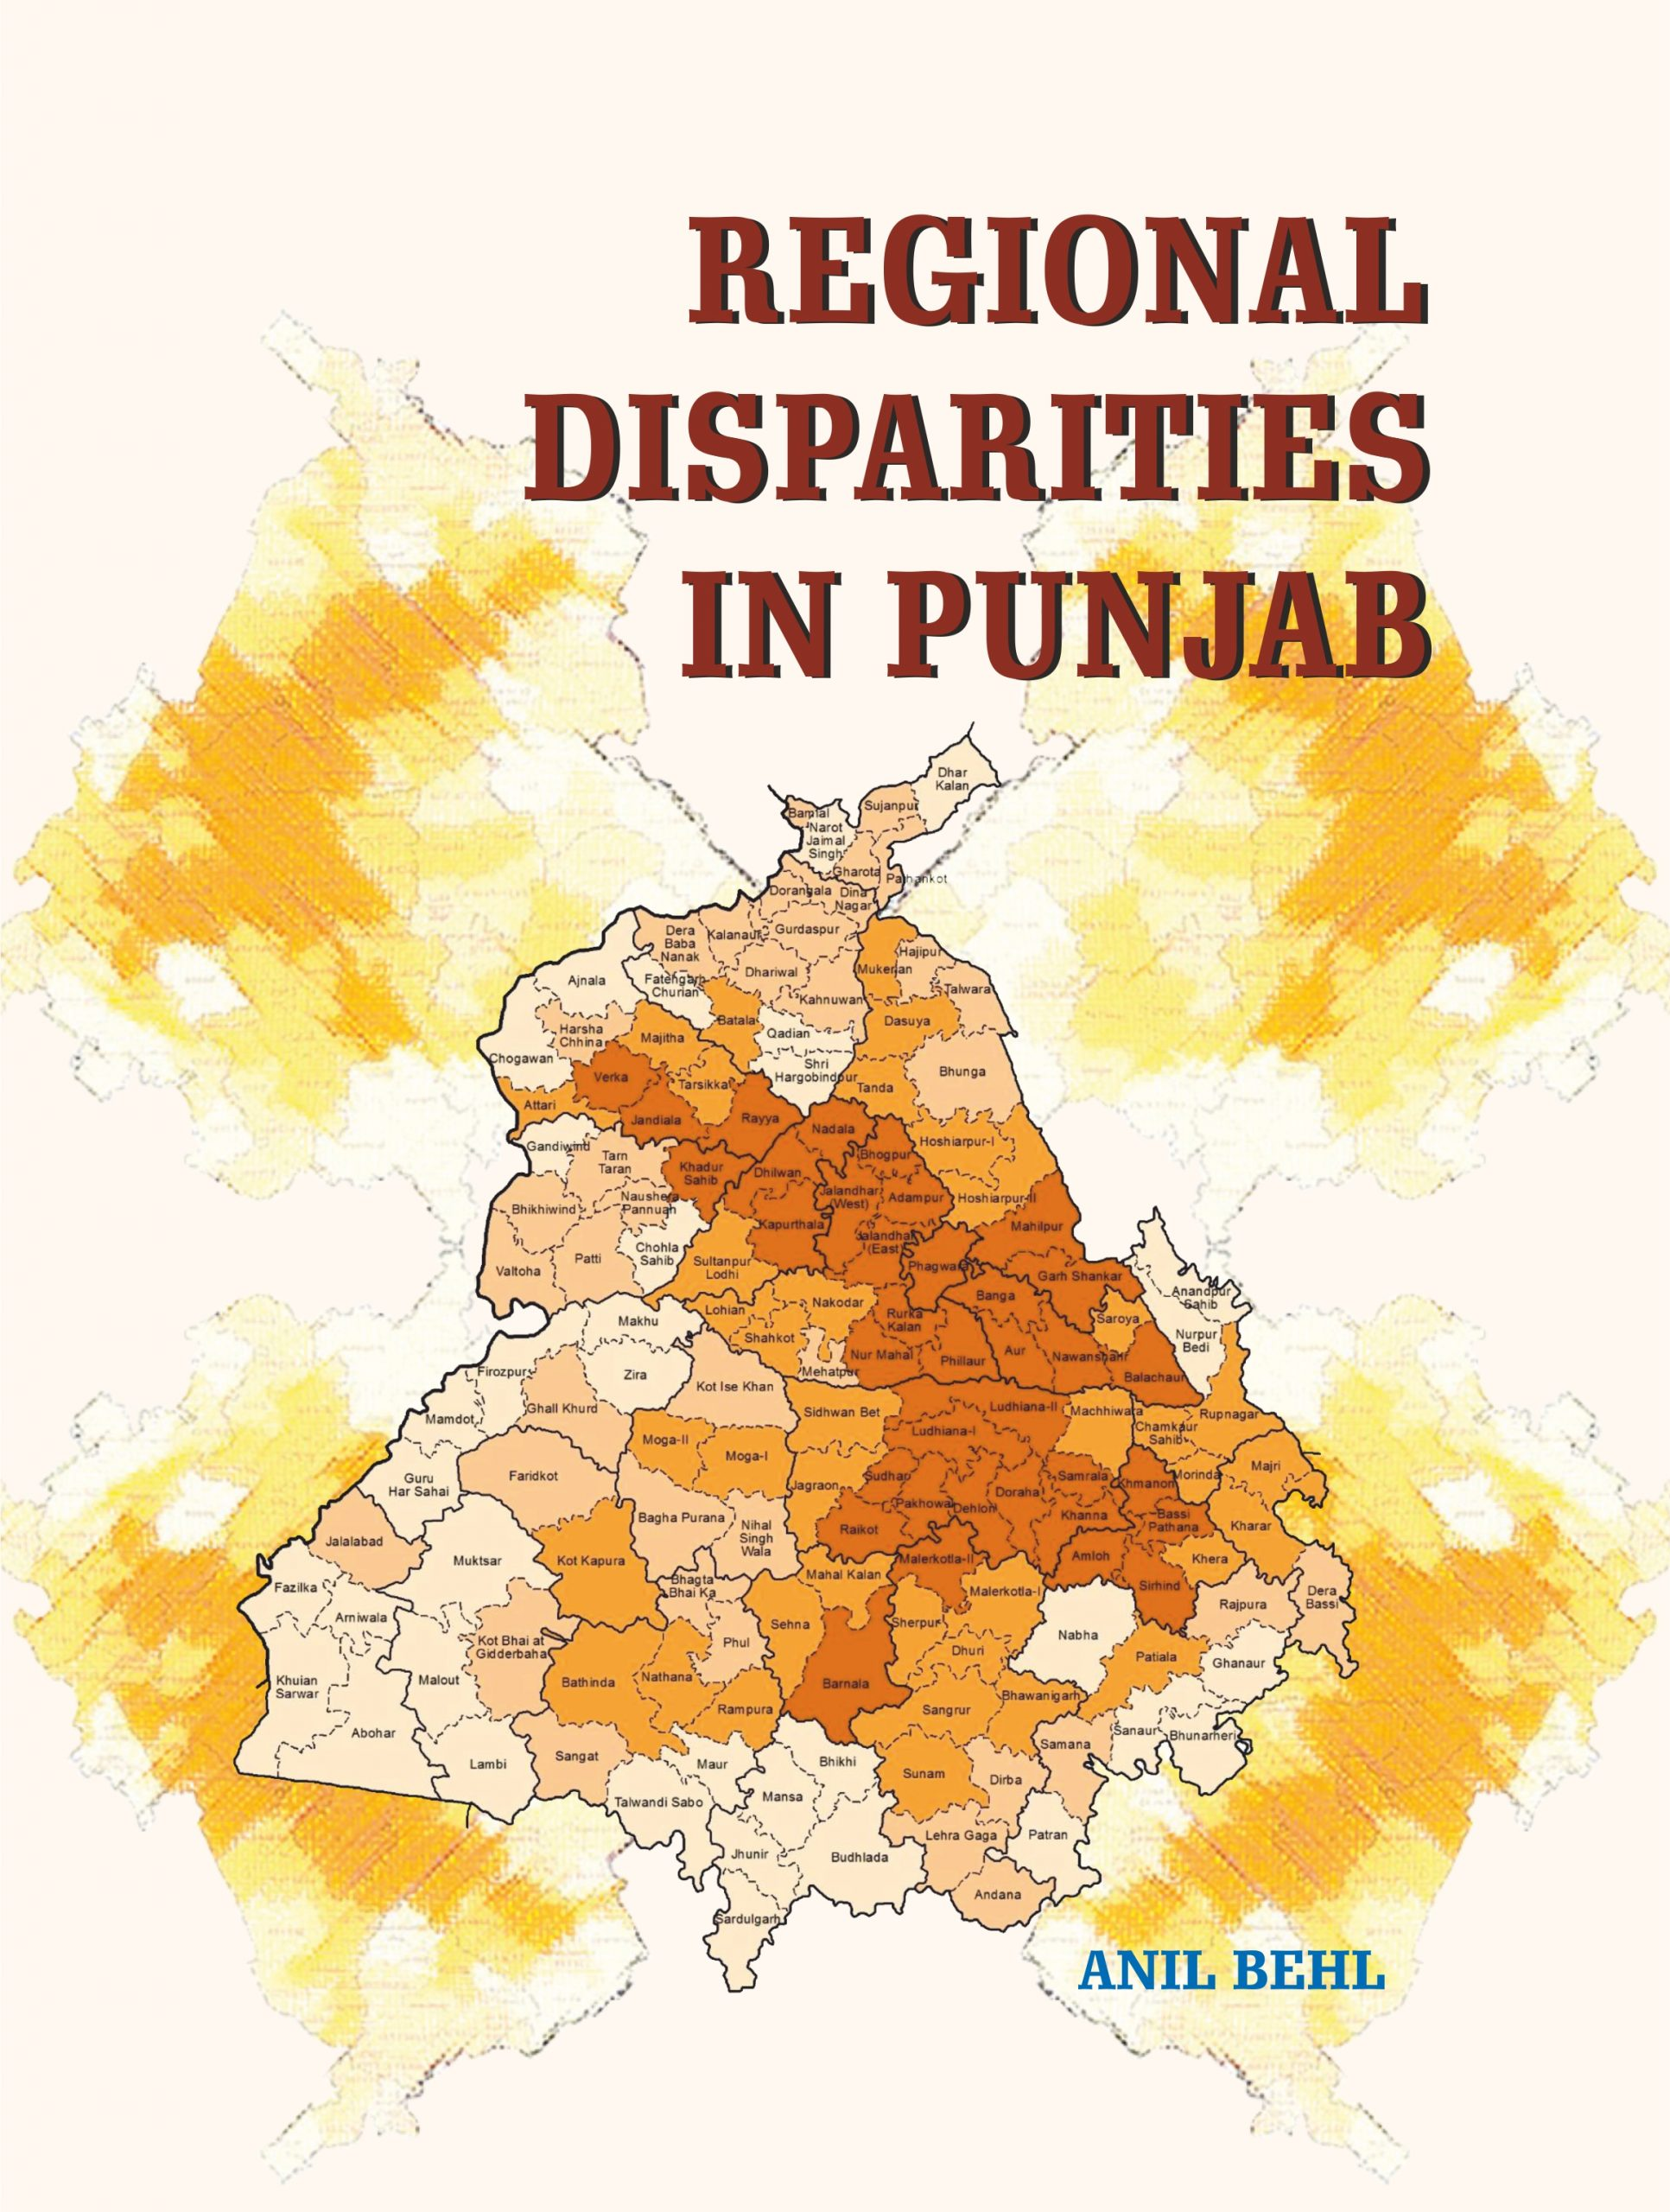 Regional disparities in Punjab by Anil Behl (Mohindra publishing house)